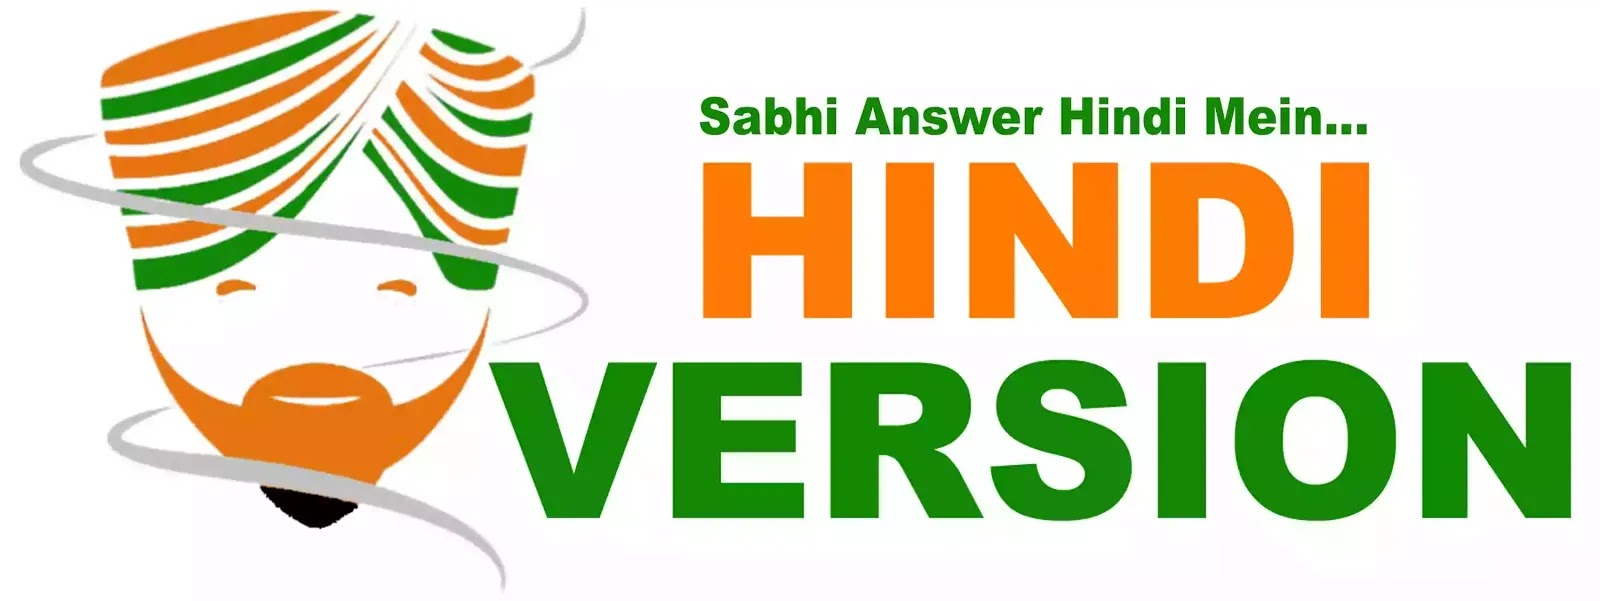 Hindi Version - Sabhi Answer Hindi Mein